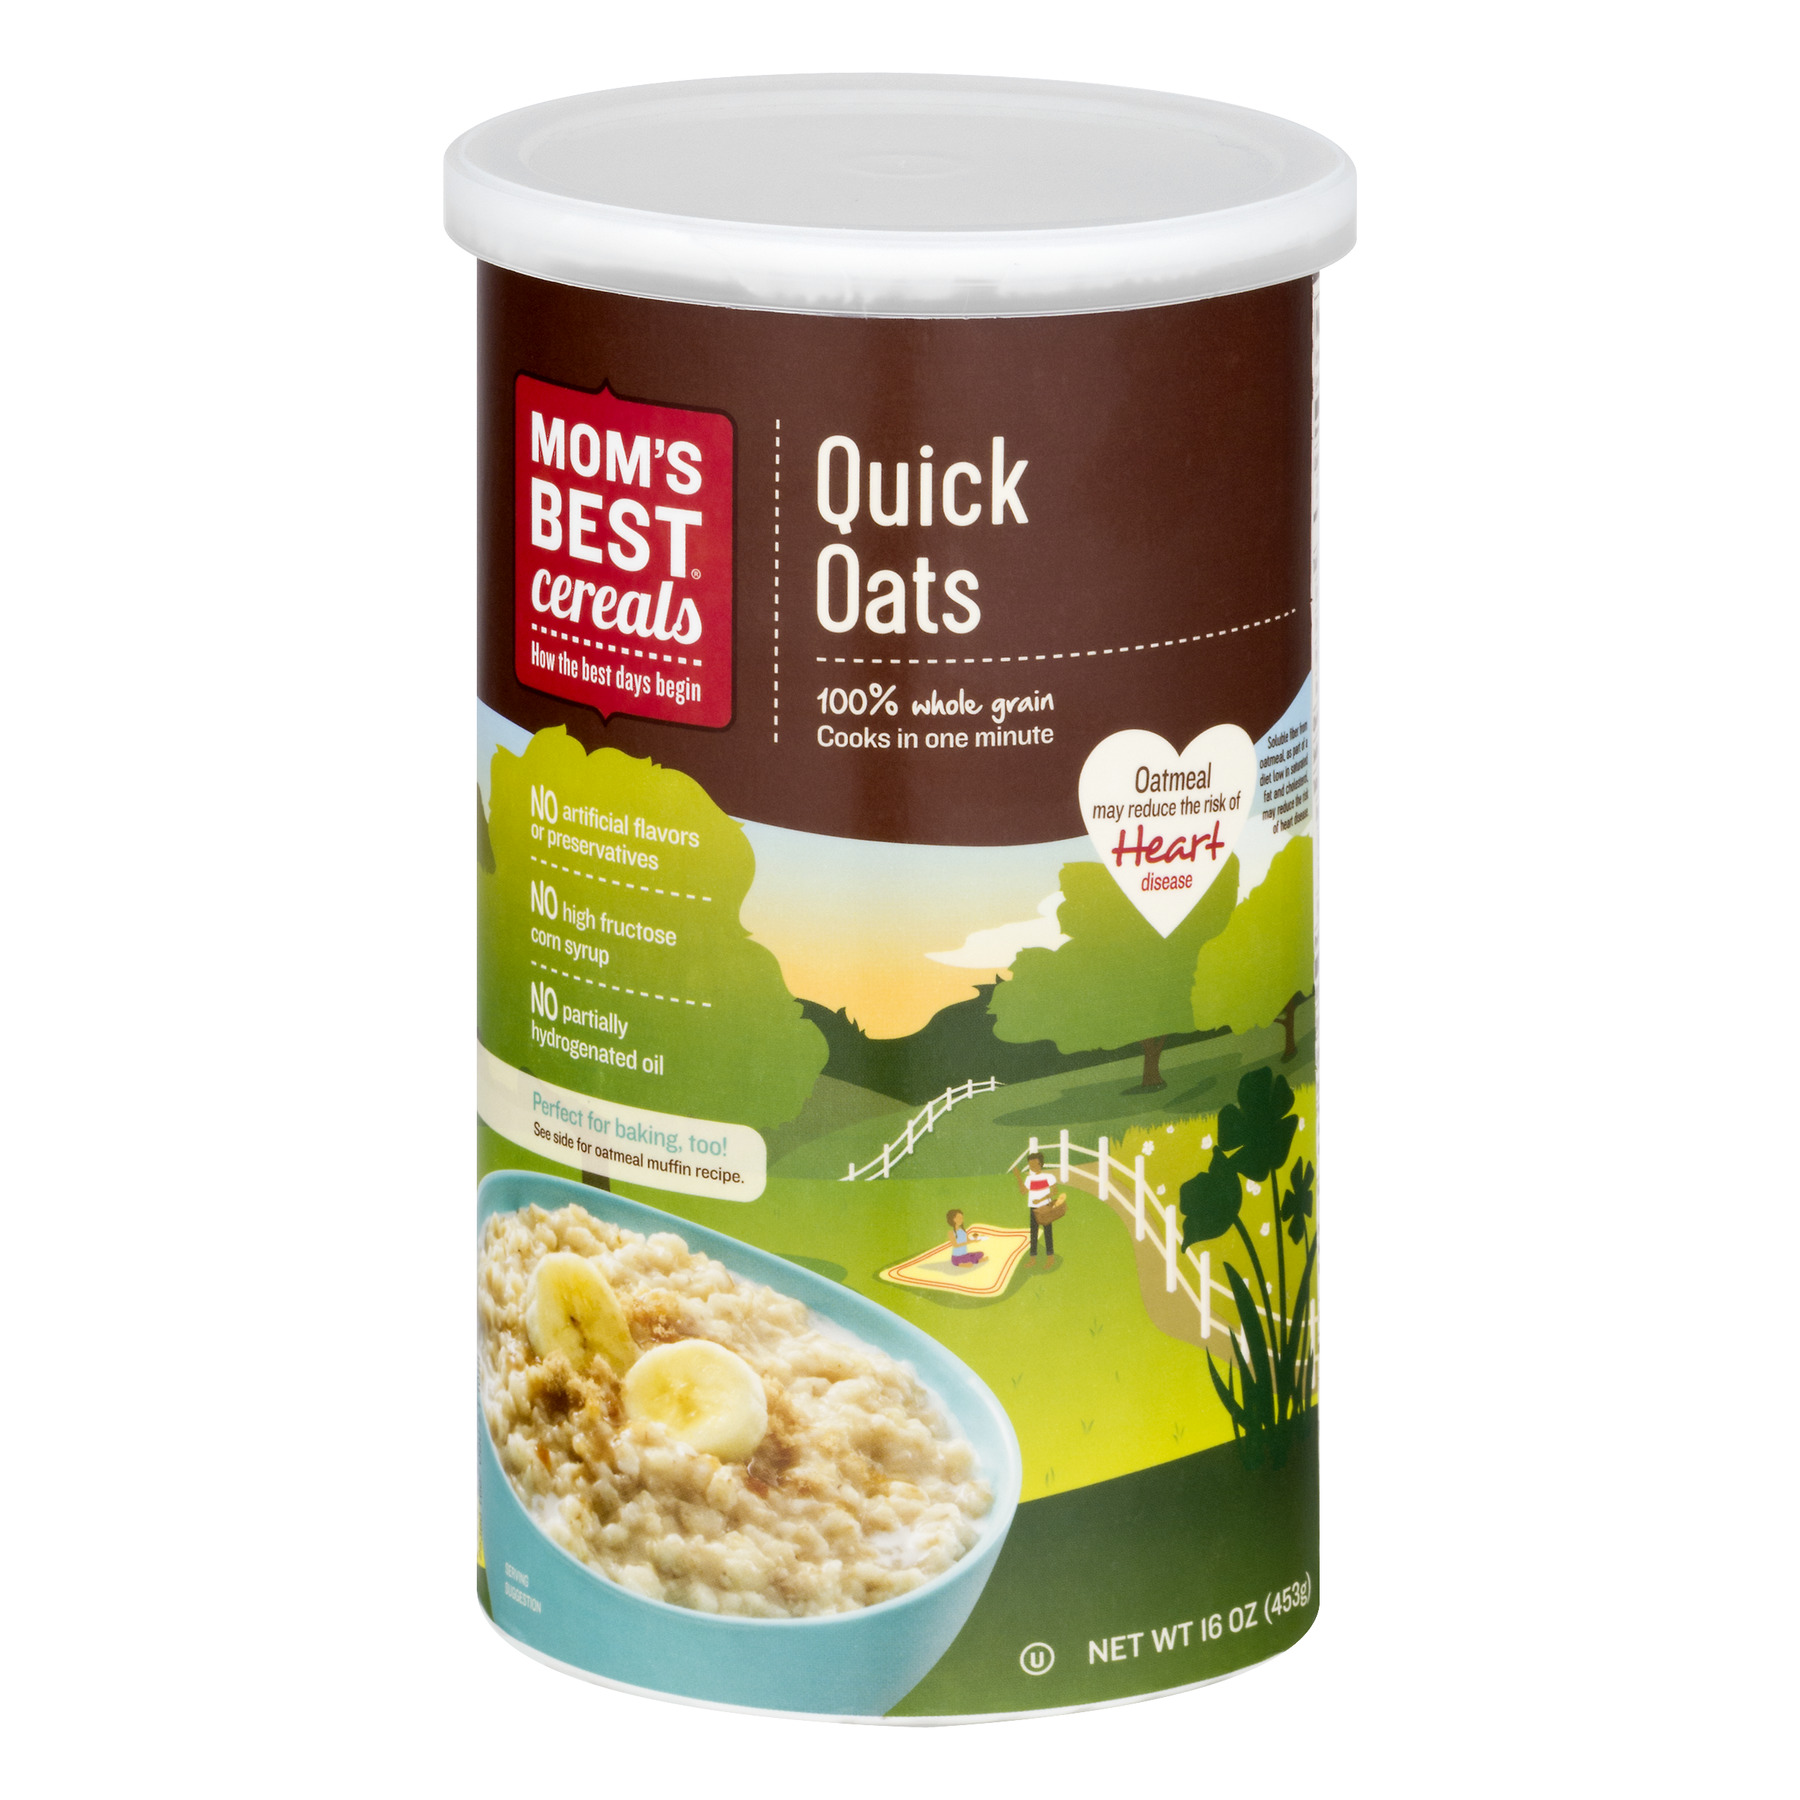 (4 Pack) Mom's Best Cereals Whole Grain Oatmeal, Quick Oats, 16 Oz